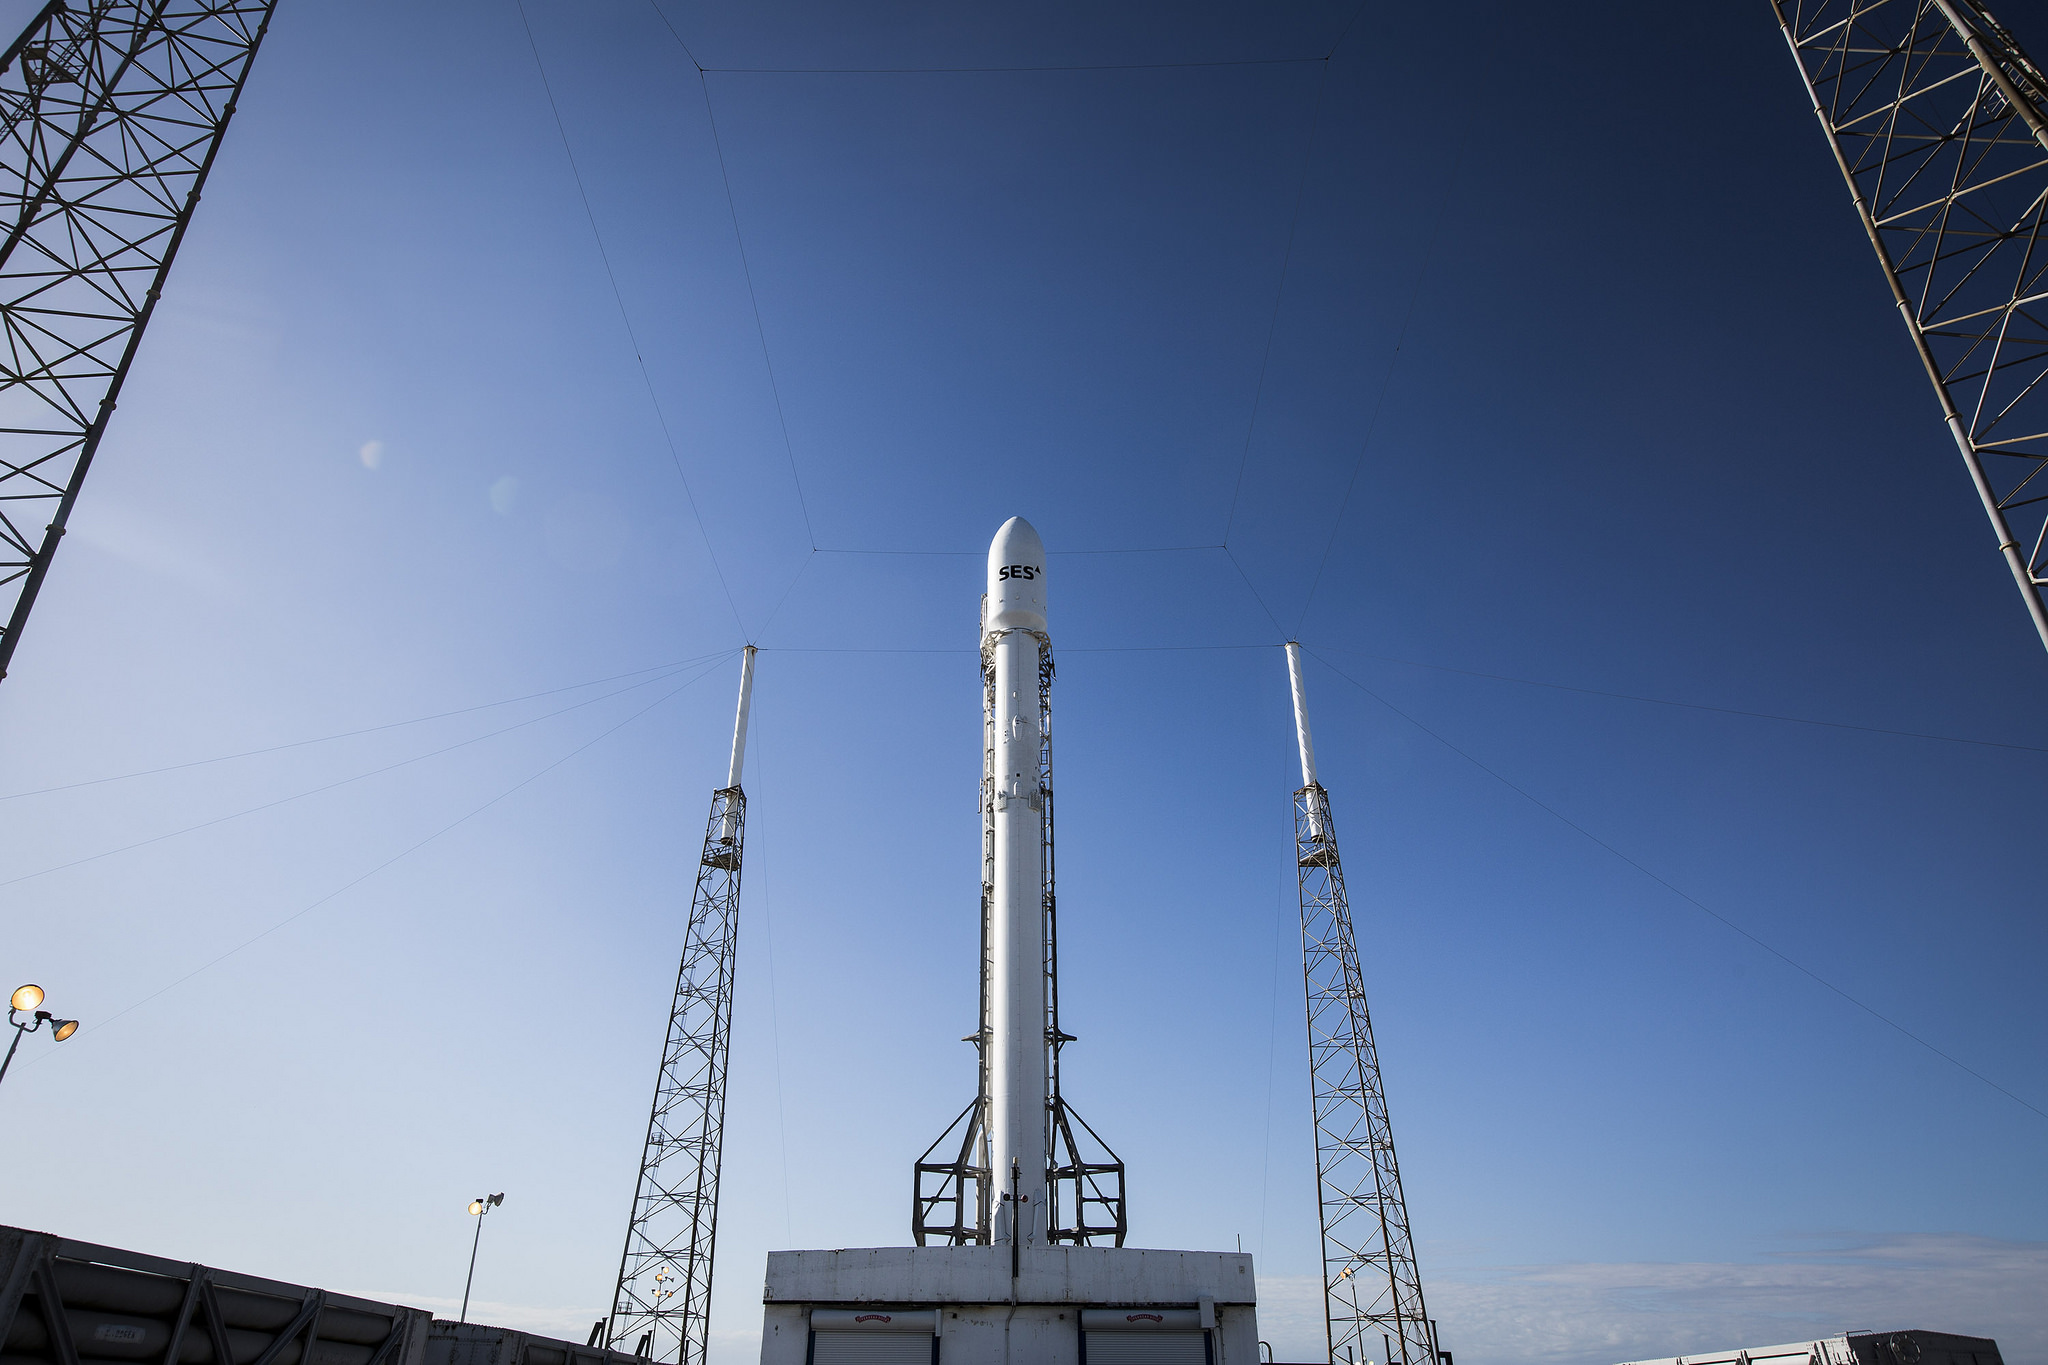 SES-9 Communications Satellite and Falcon 9 Rocket